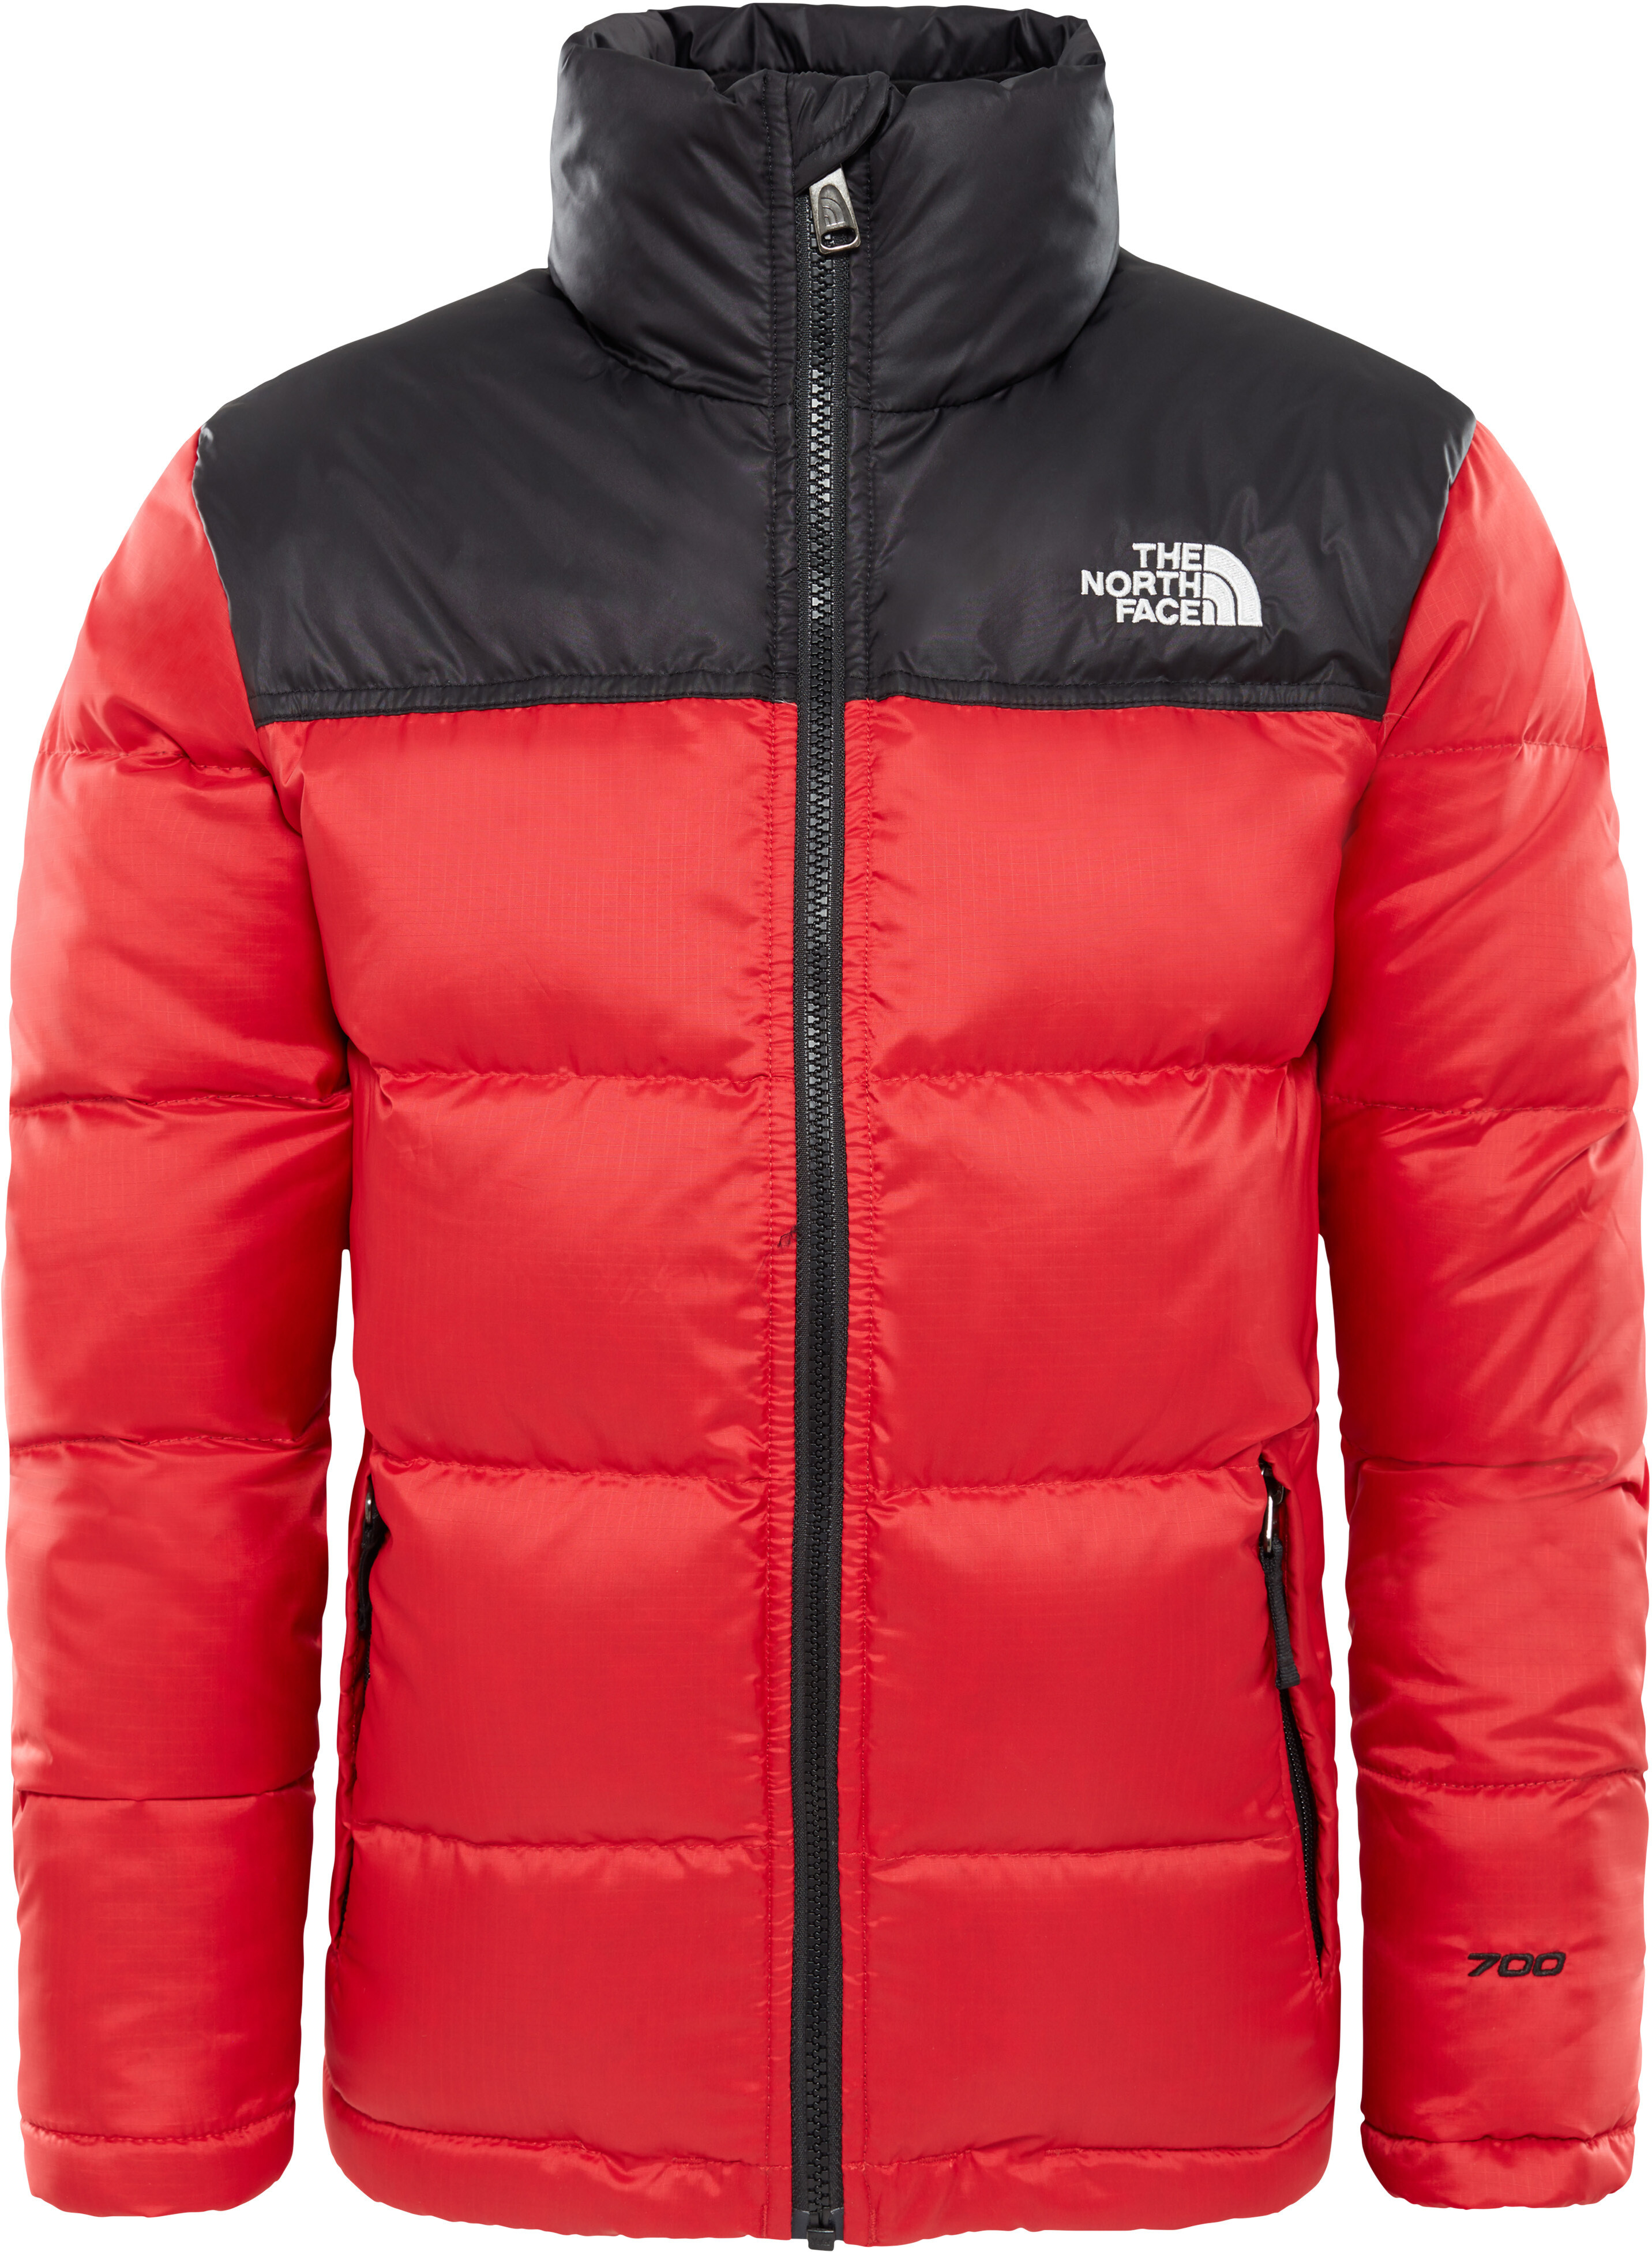 b03ab79178b0 The North Face Nuptse Jacket Children grey red at Addnature.co.uk